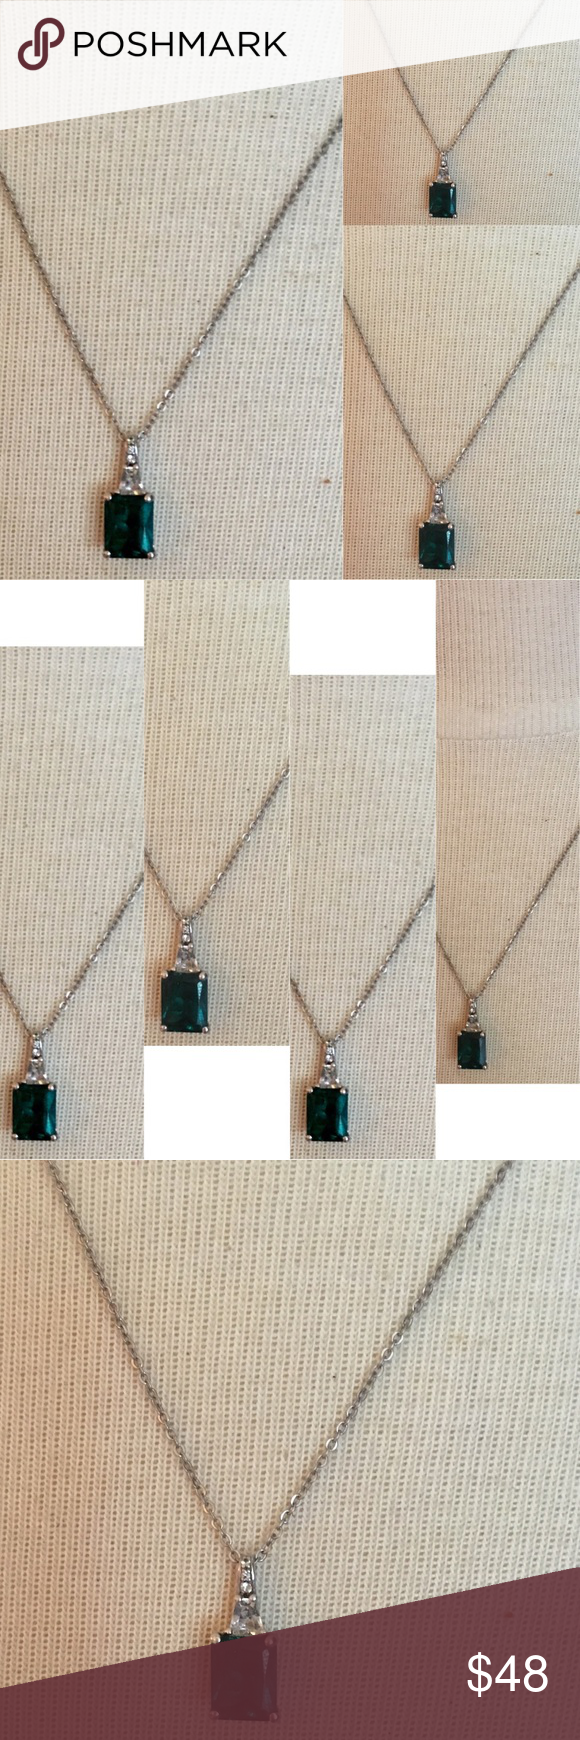 Hold for elishabrie tv pinterest pendant set ss and emeralds